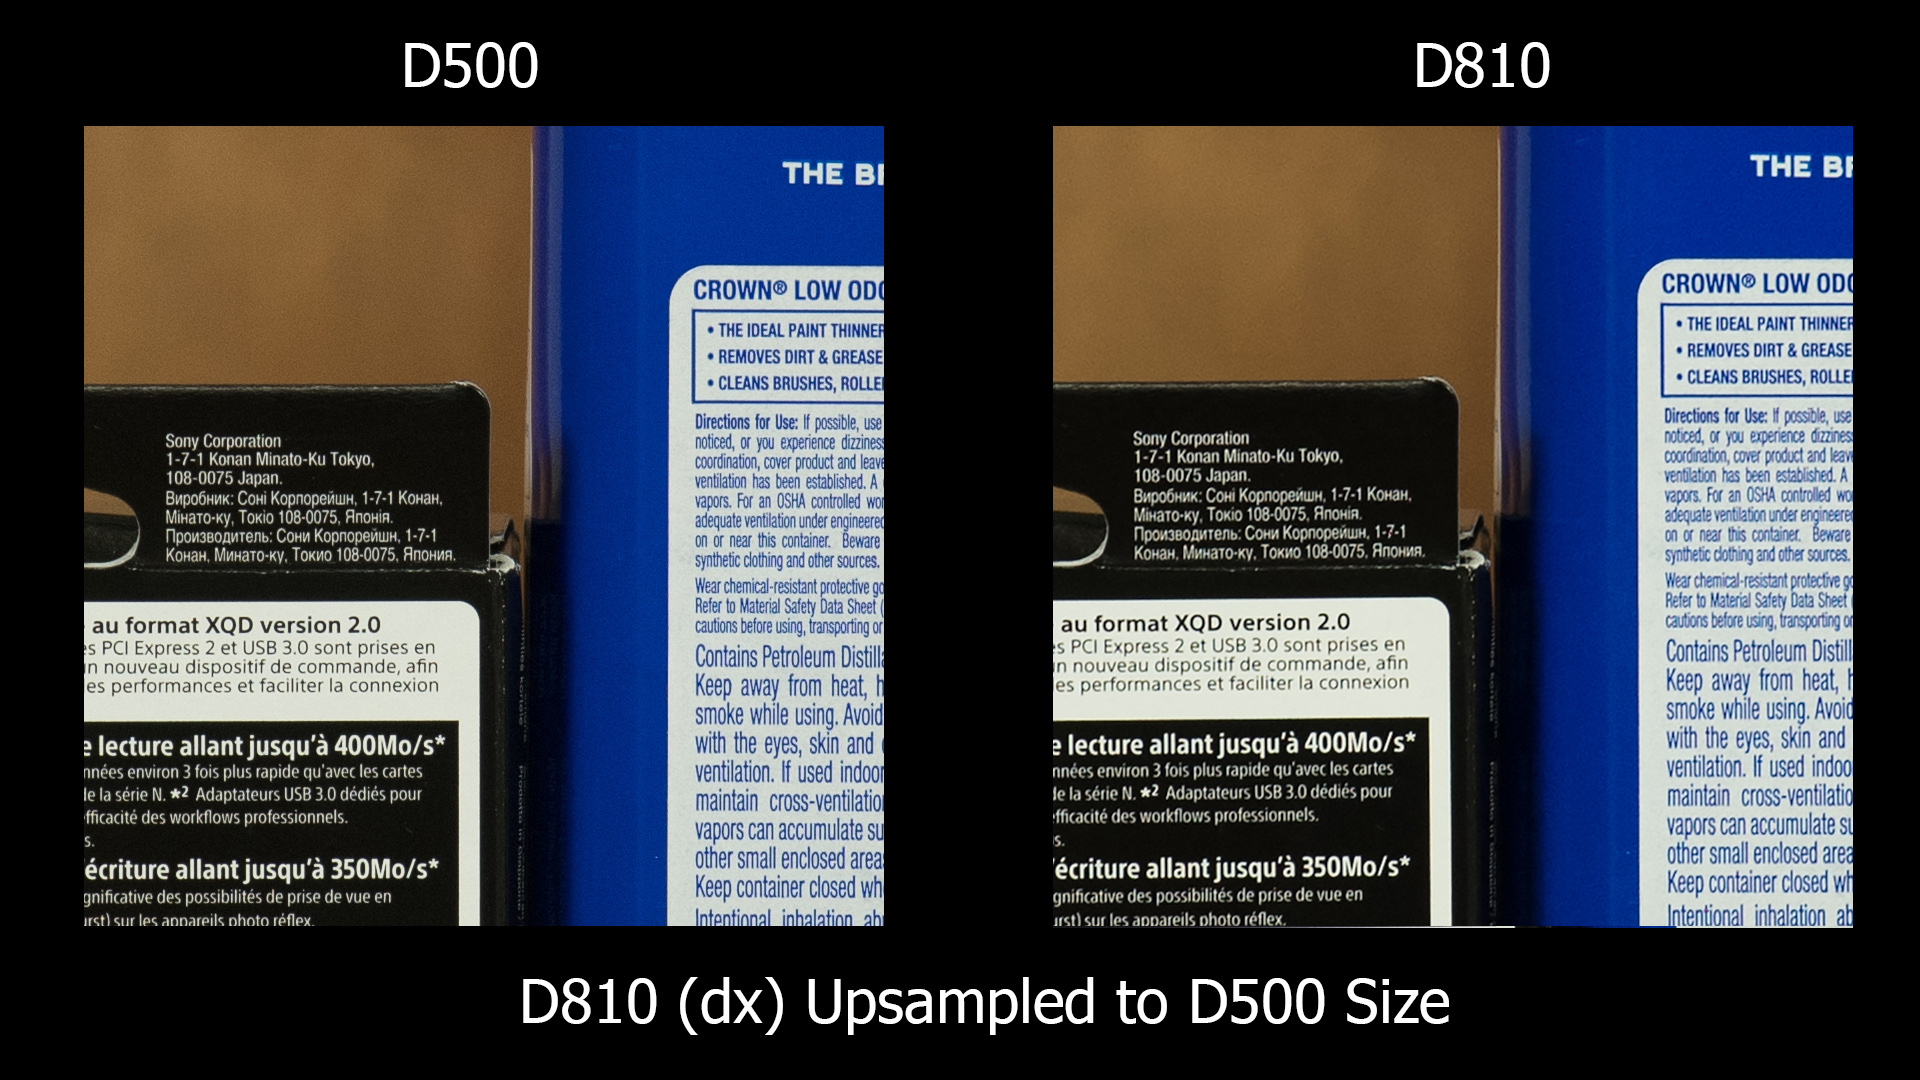 D500 vs D810 - D810 DX upsize